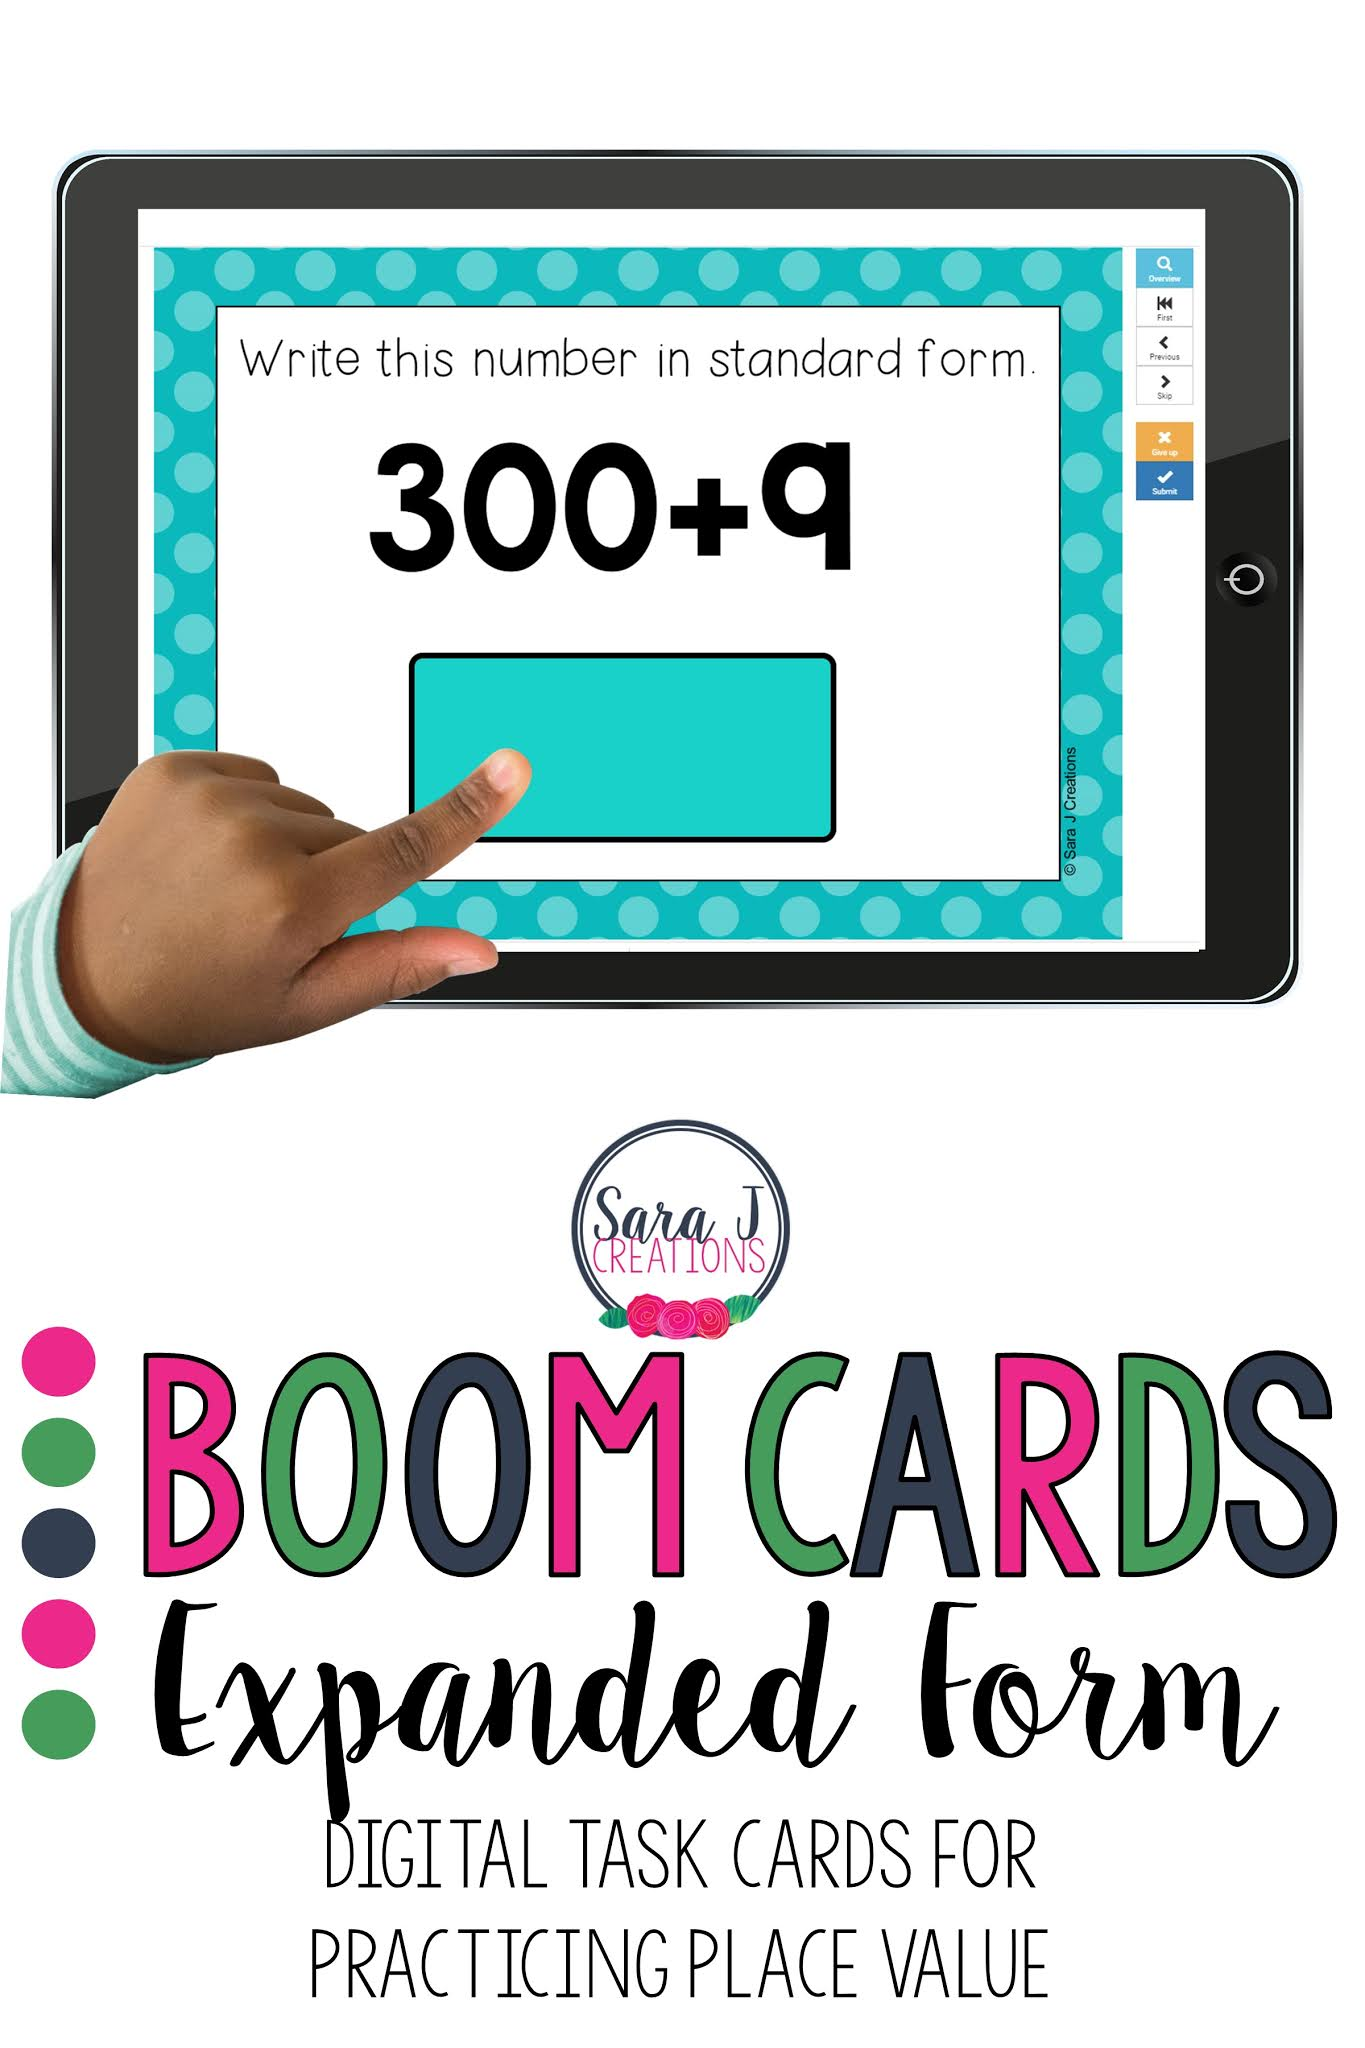 Digital task cards (Boom Cards) make teaching place value and expanded form more fun and engaging. Self checking, no prep cards make it perfect for a busy teacher.